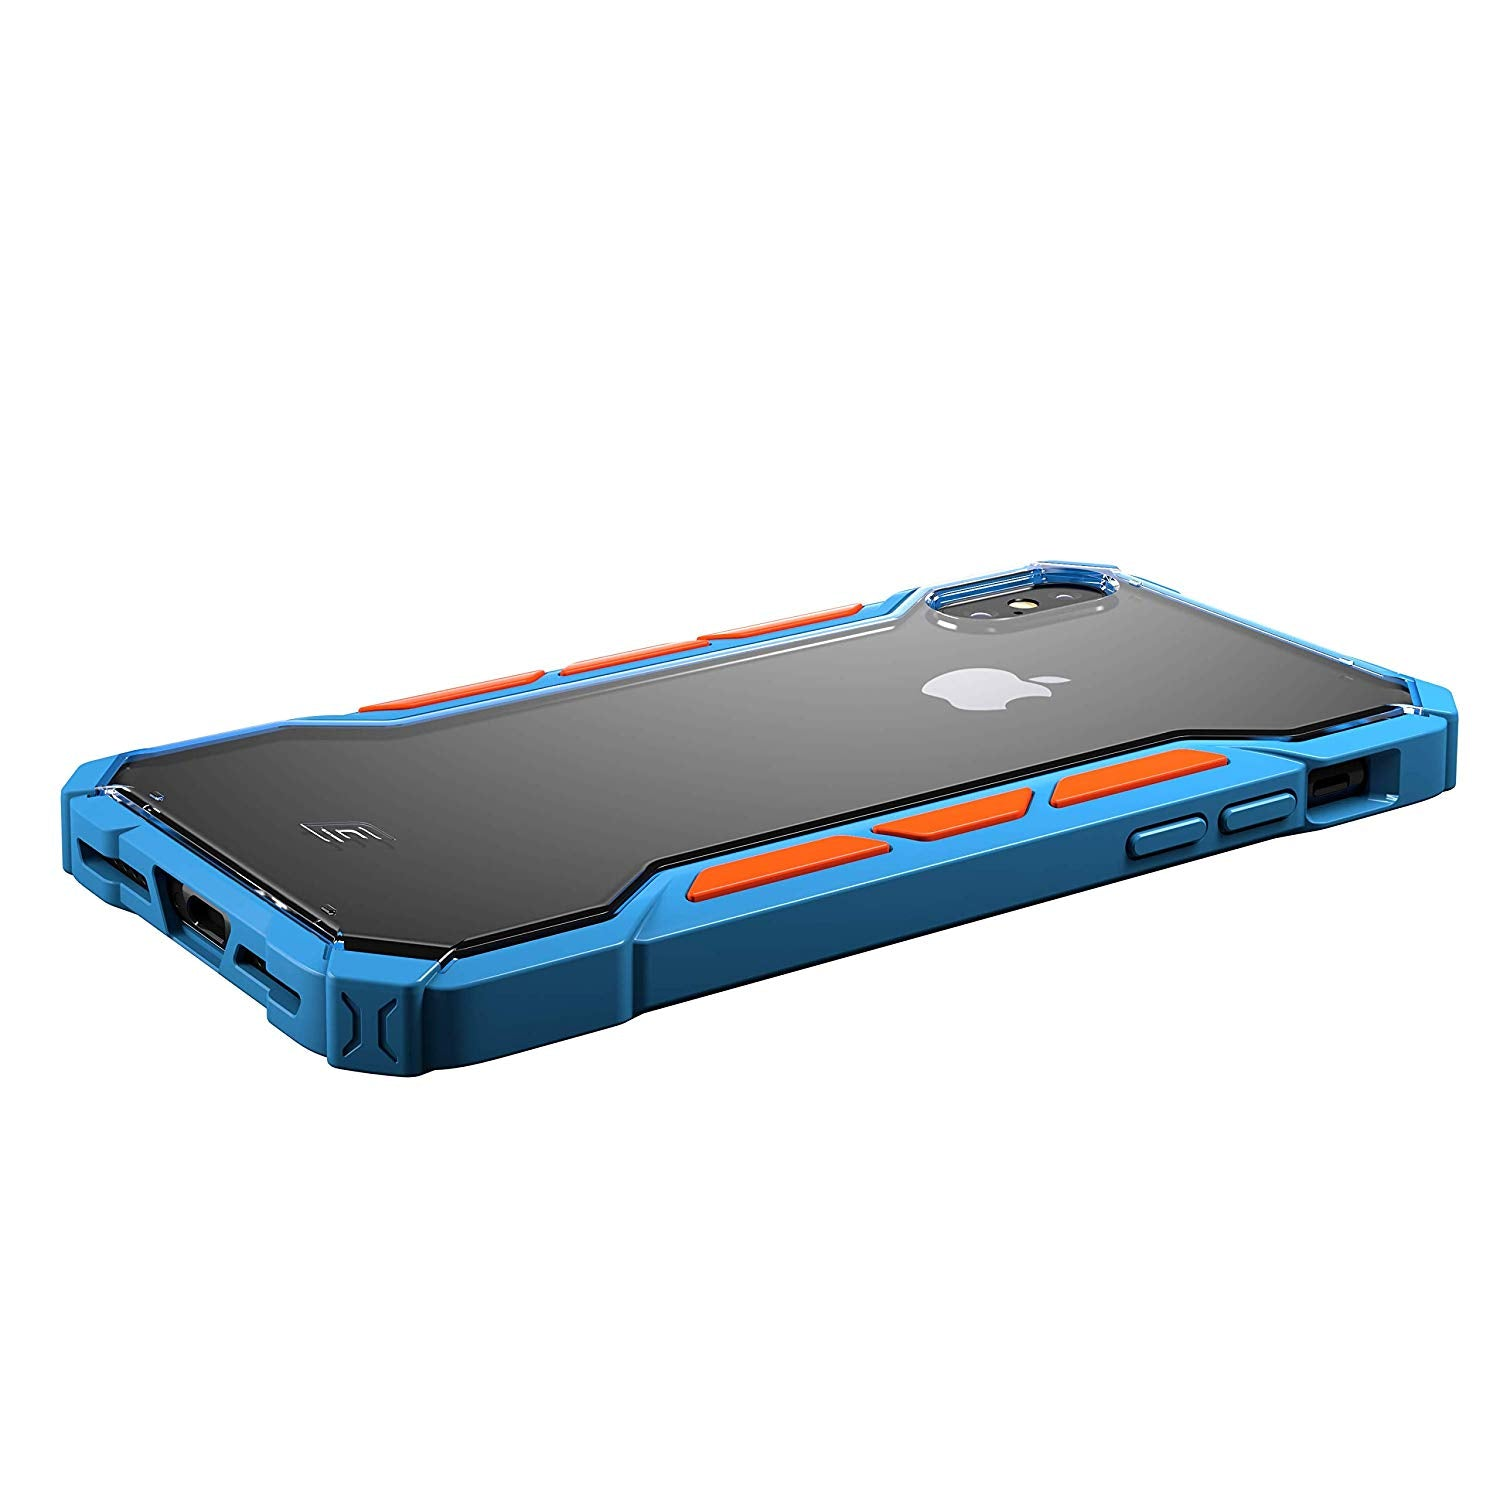 Element Case Rally Drop Tested case for iPhone Xs Max - Blue/Orange (EMT-322-195E-03) get best offers deals at buythevalue.in